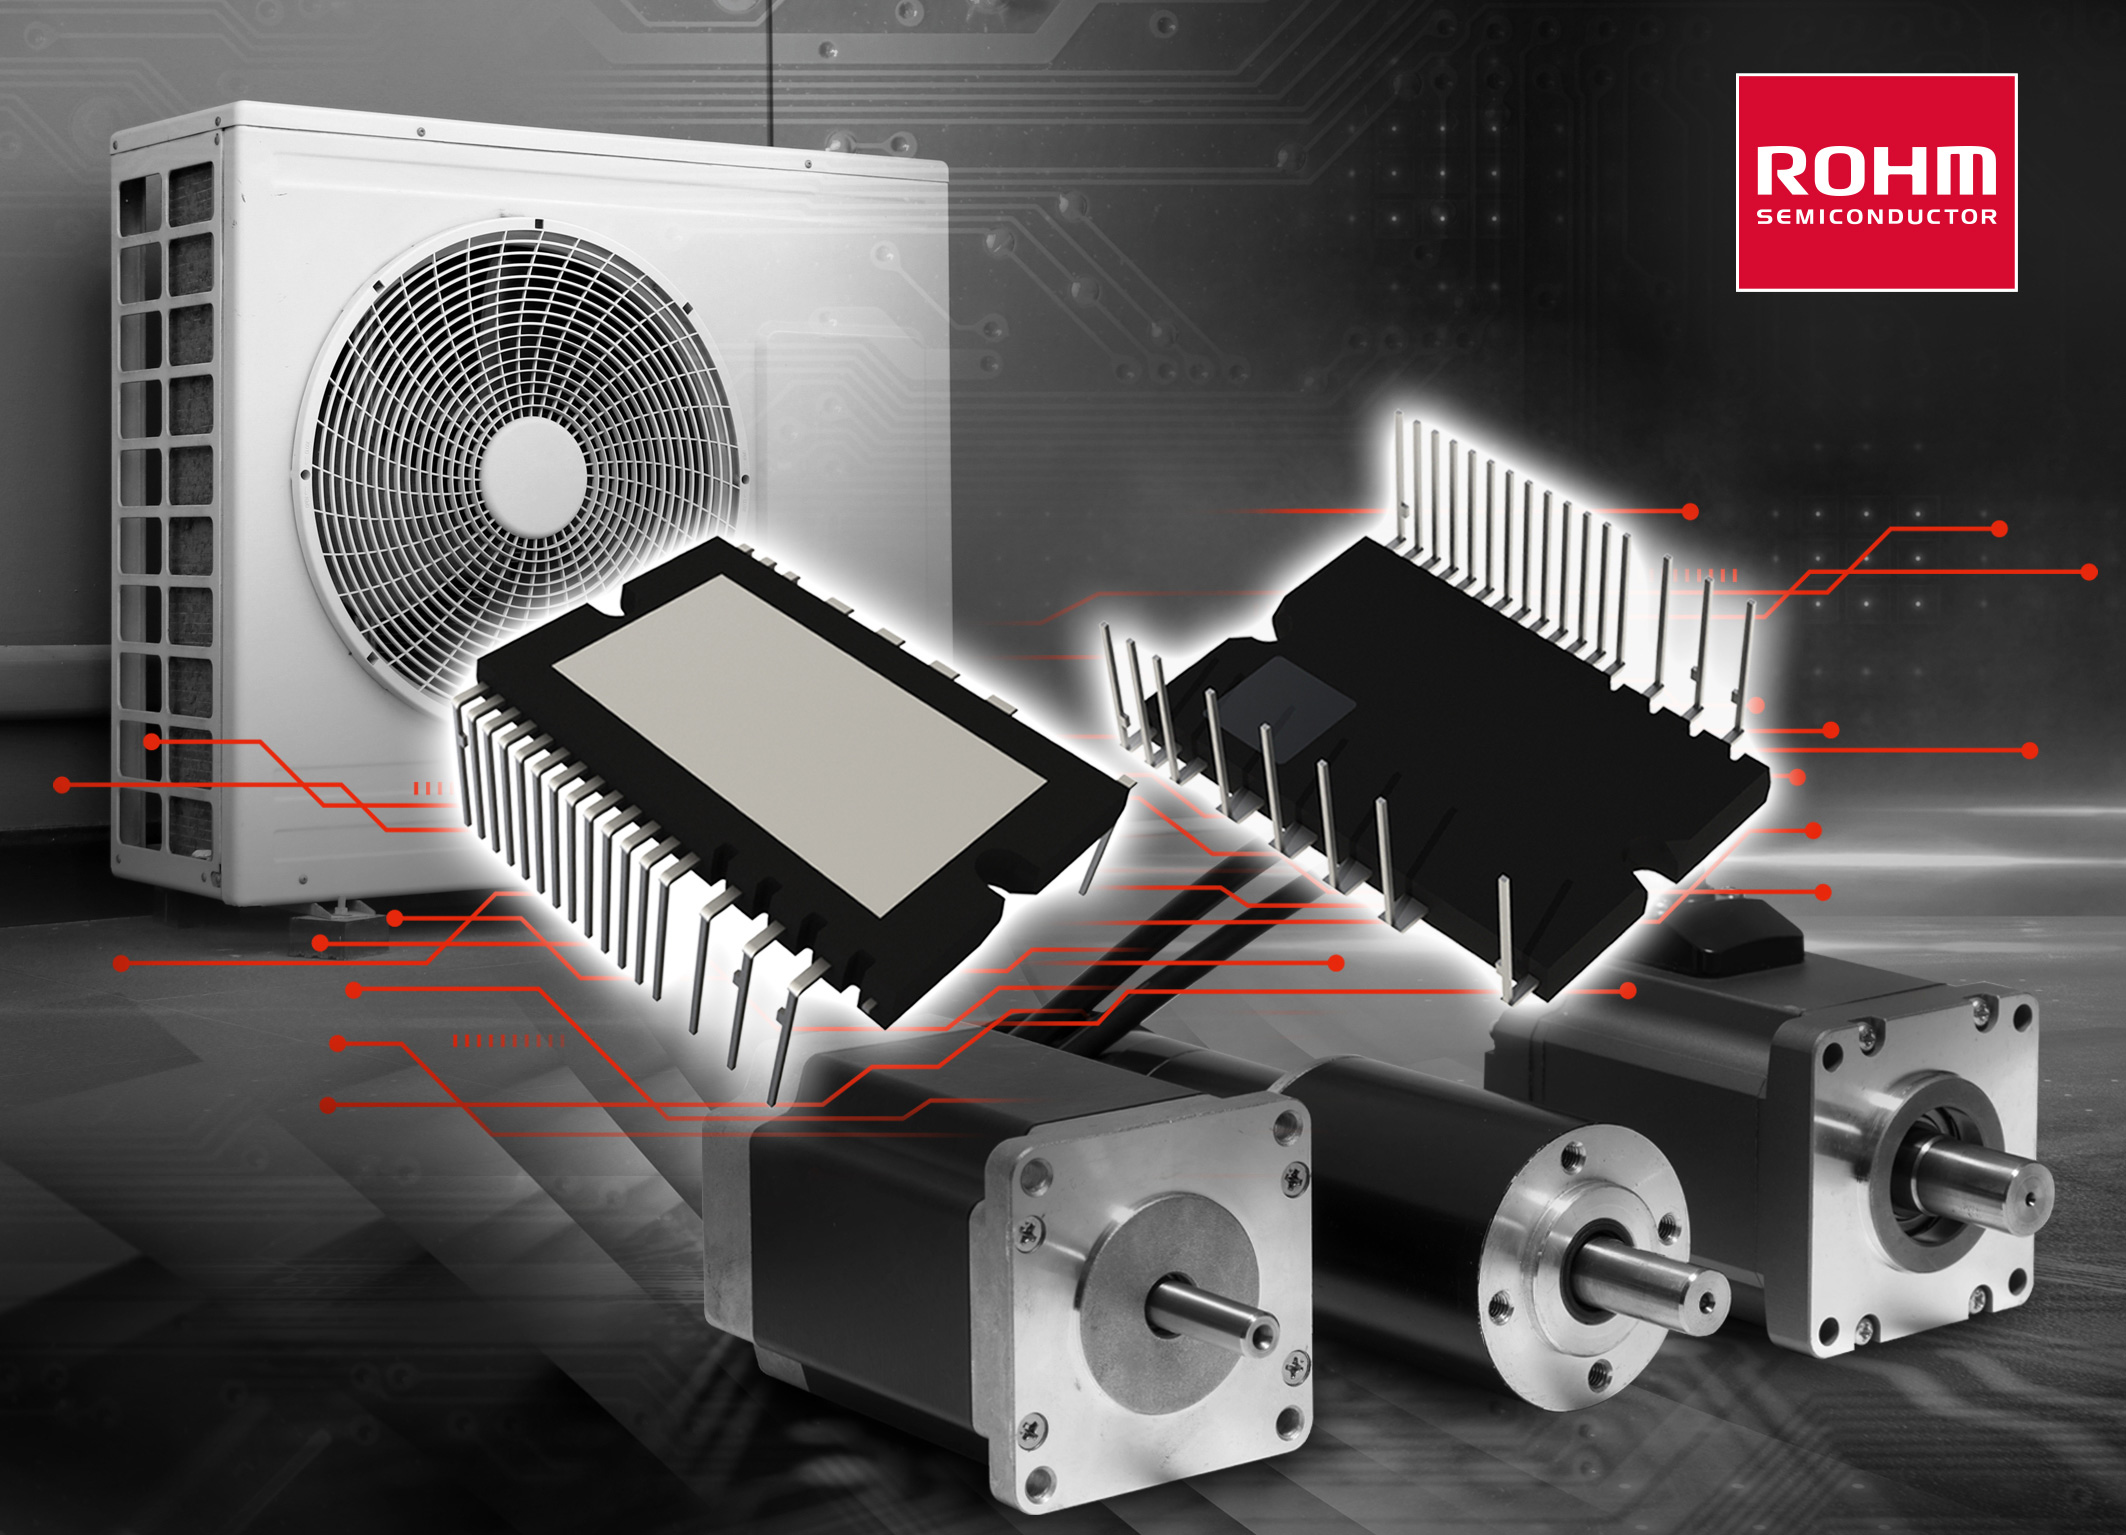 New 600V IGBT modules target inverter applications May 3, 2021 By Redding Traiger